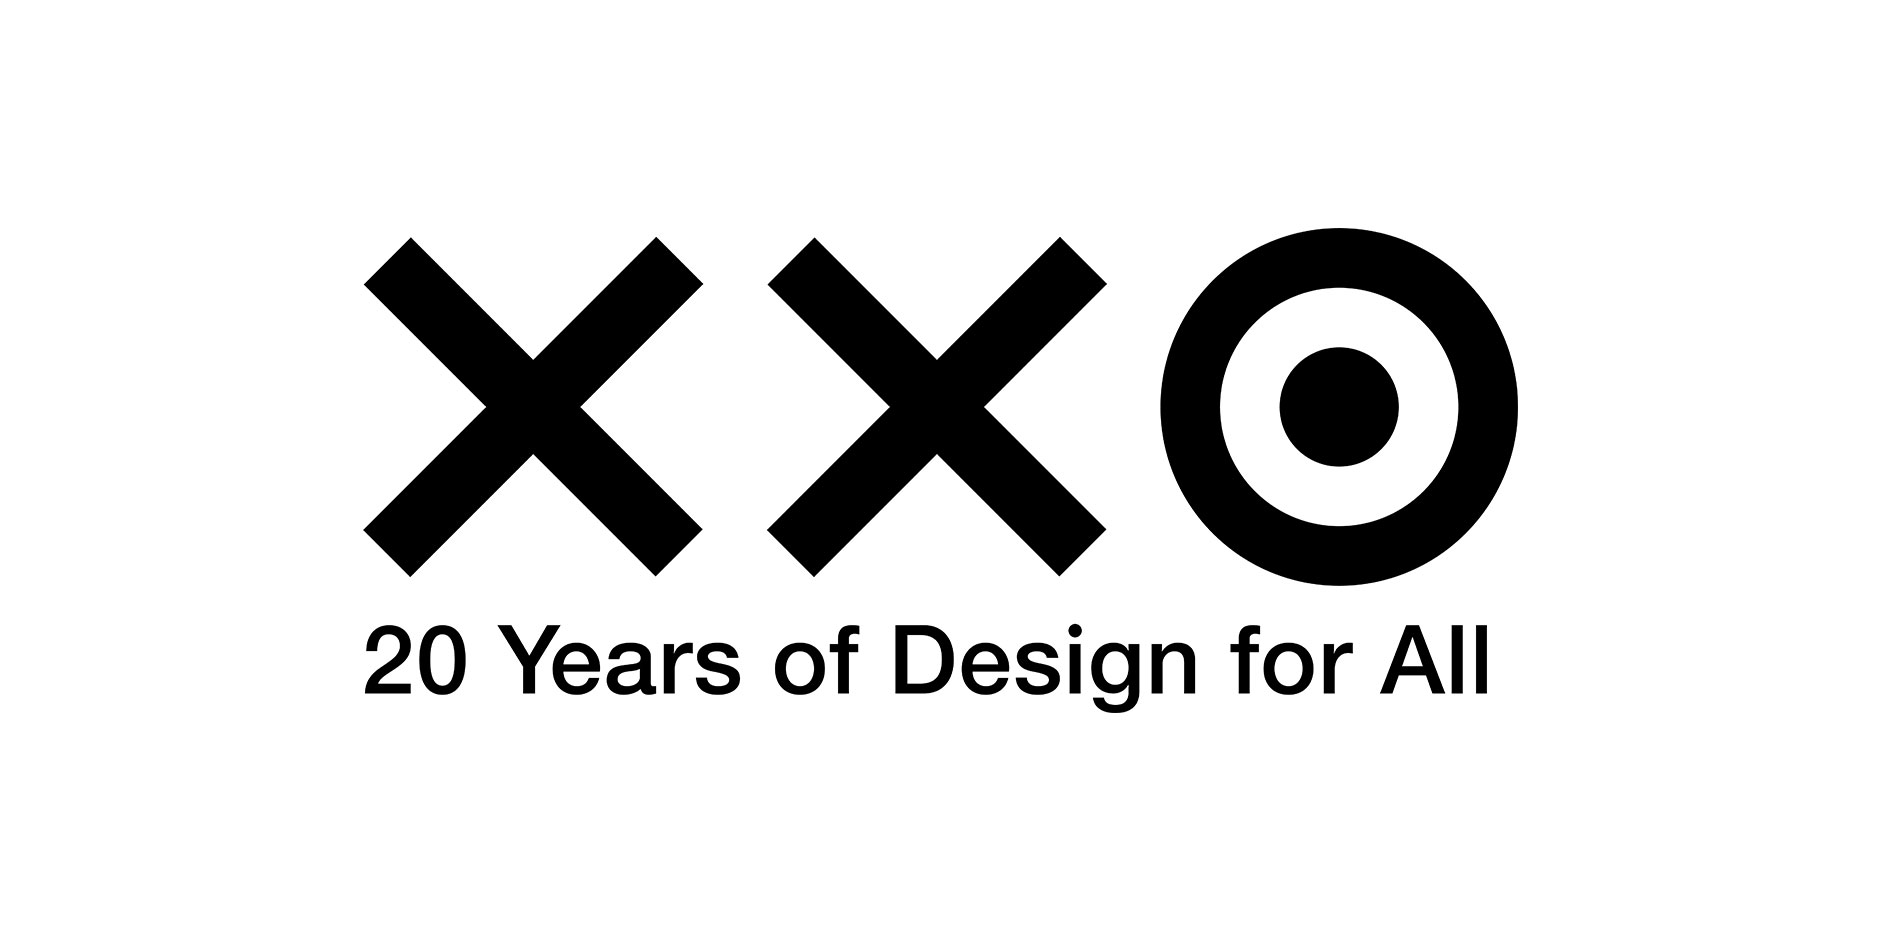 """XXO"" with bullseye as the O, 20 Years of Design for All in black text below XXO"